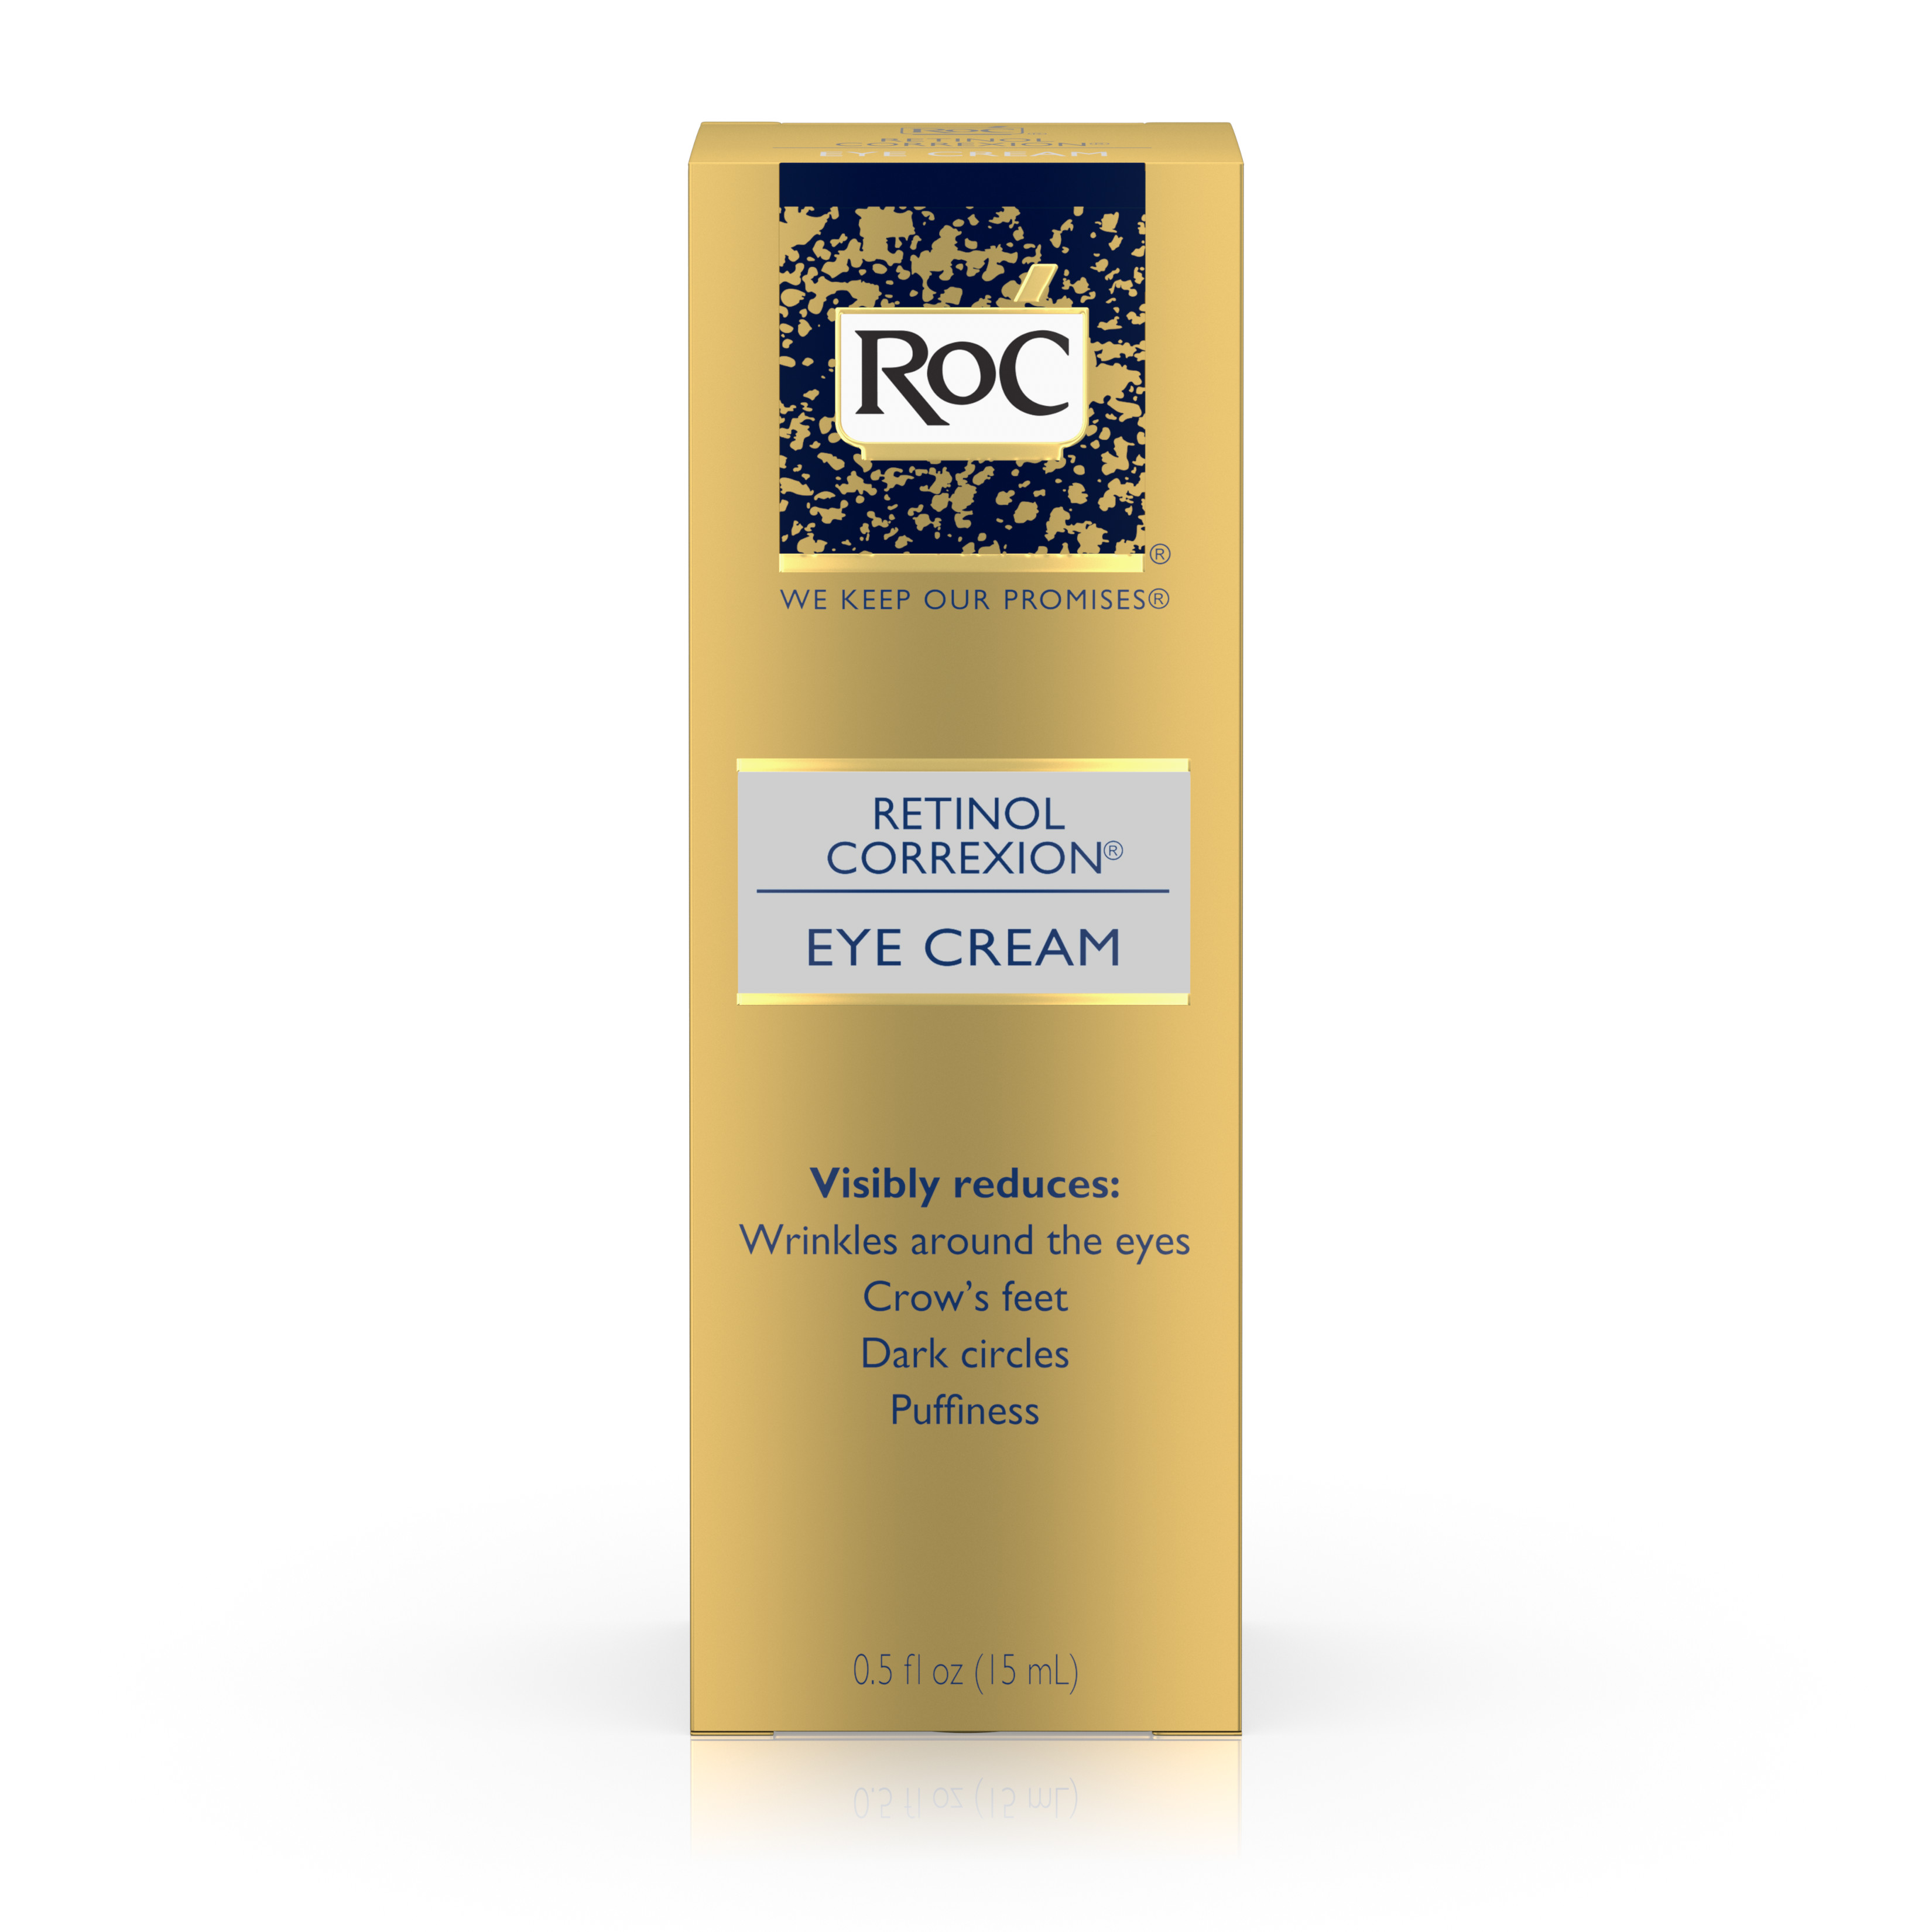 RoC Retinol Correxion Eye Cream, .5 Oz